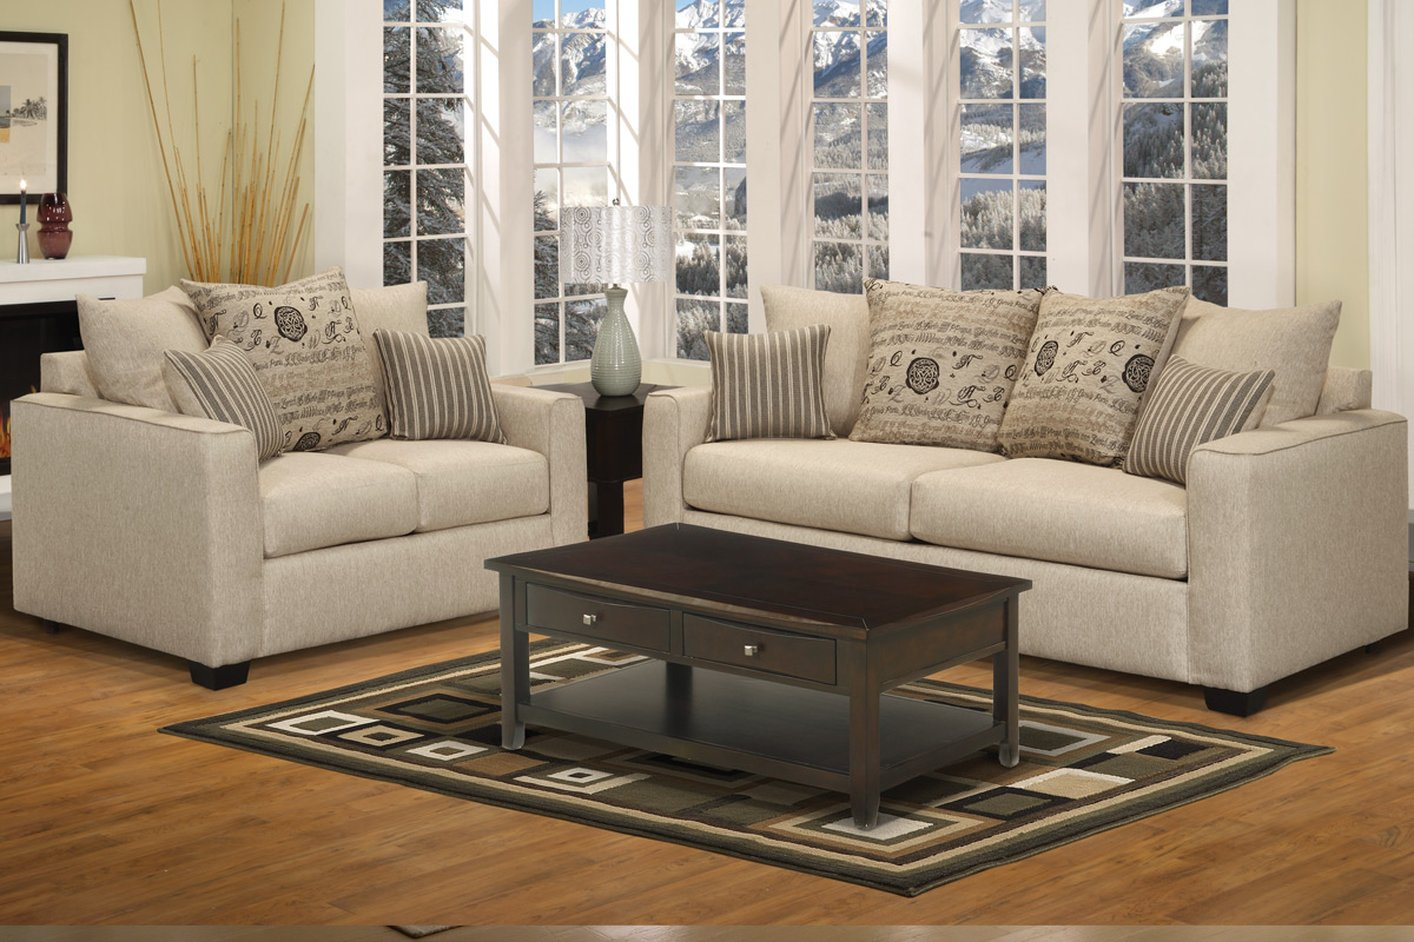 Online purchase of the loveseat and sofa